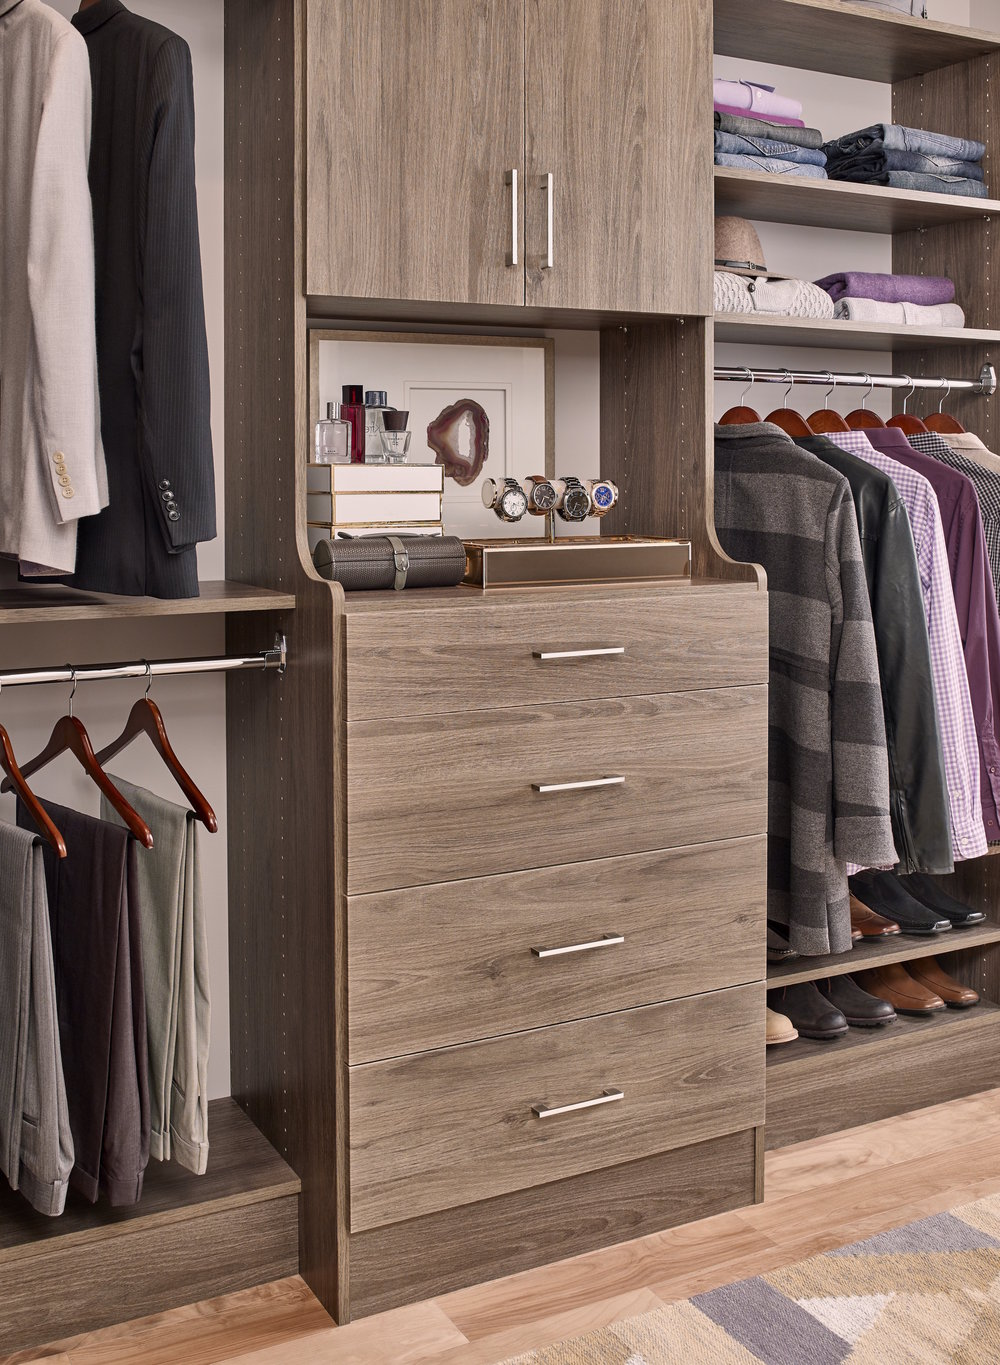 Closet Shelving Solutions - Custom Closets and Shower Doors in ...